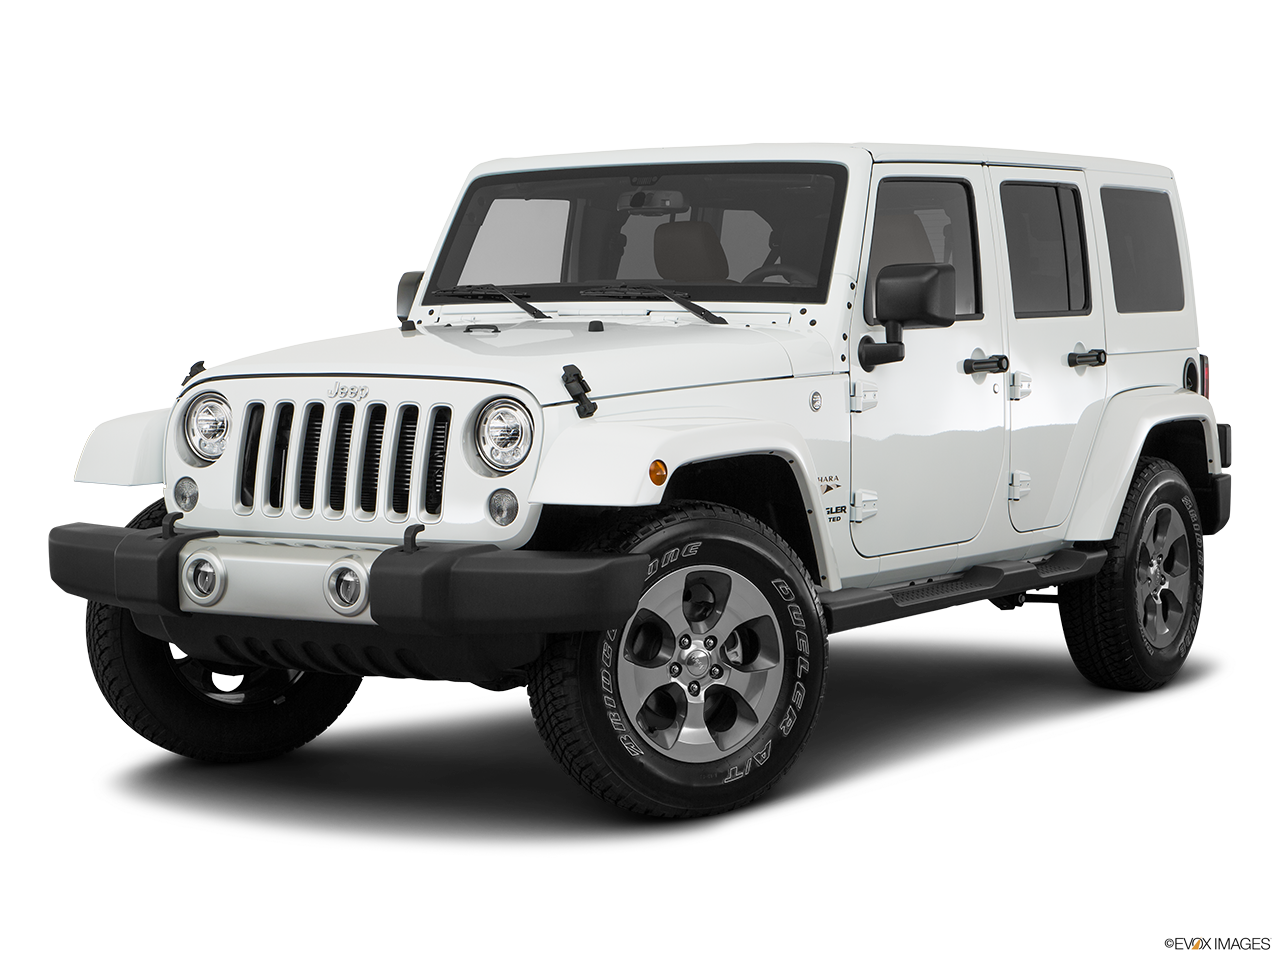 2017 jeep wrangler png. Unlimited chicago sherman